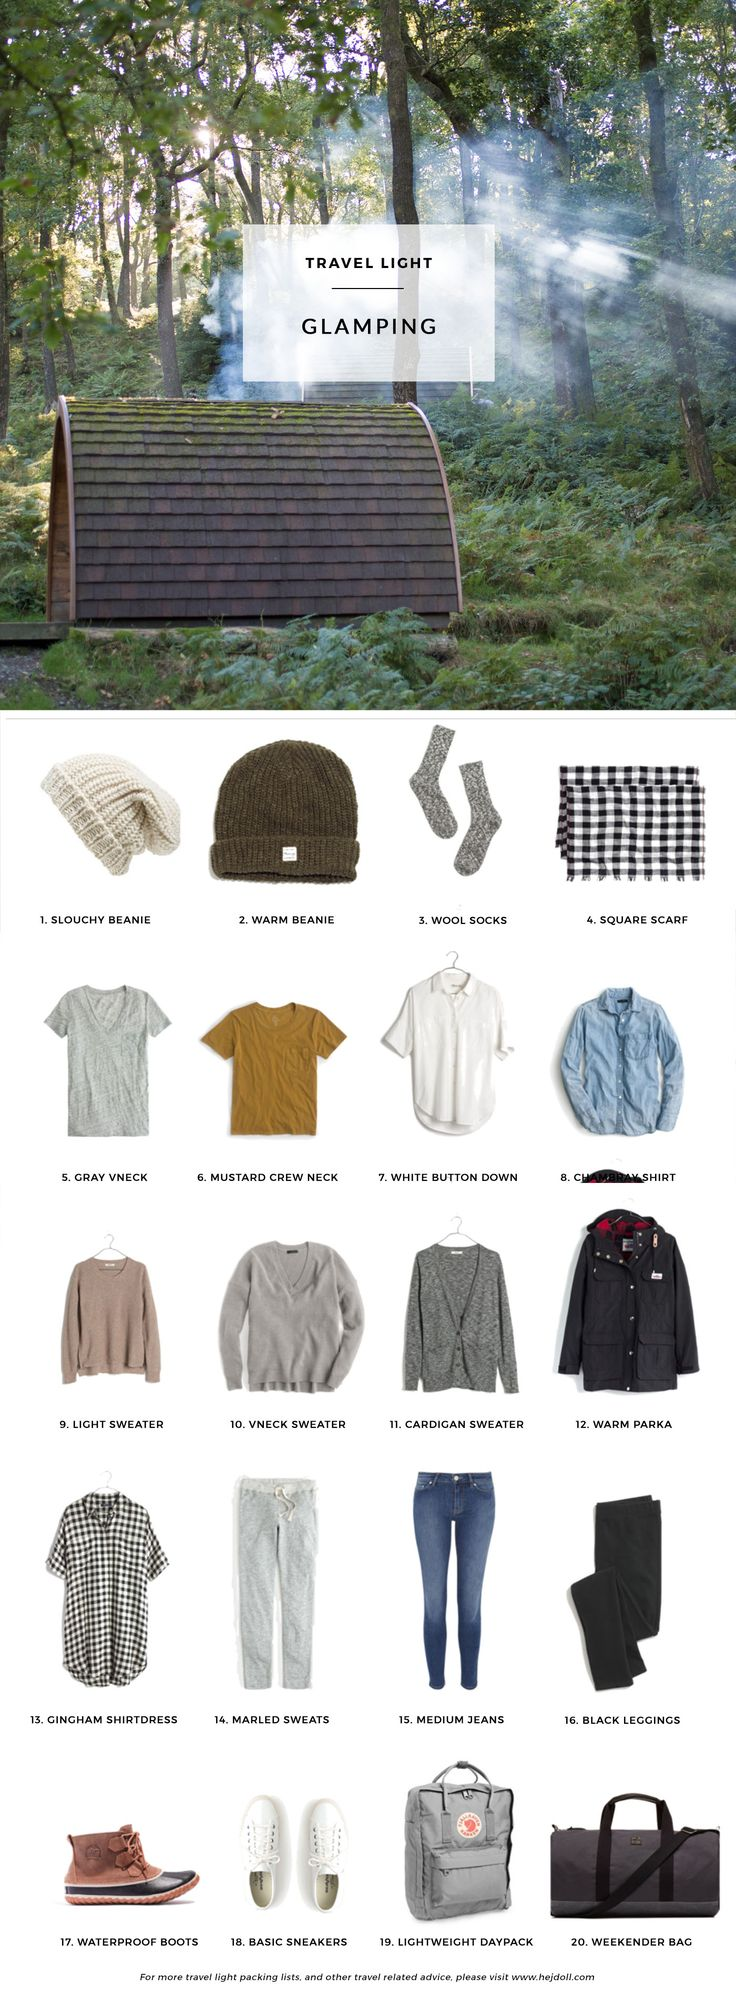 Pack for a Glamping Trip | hej doll | Bloglovin'